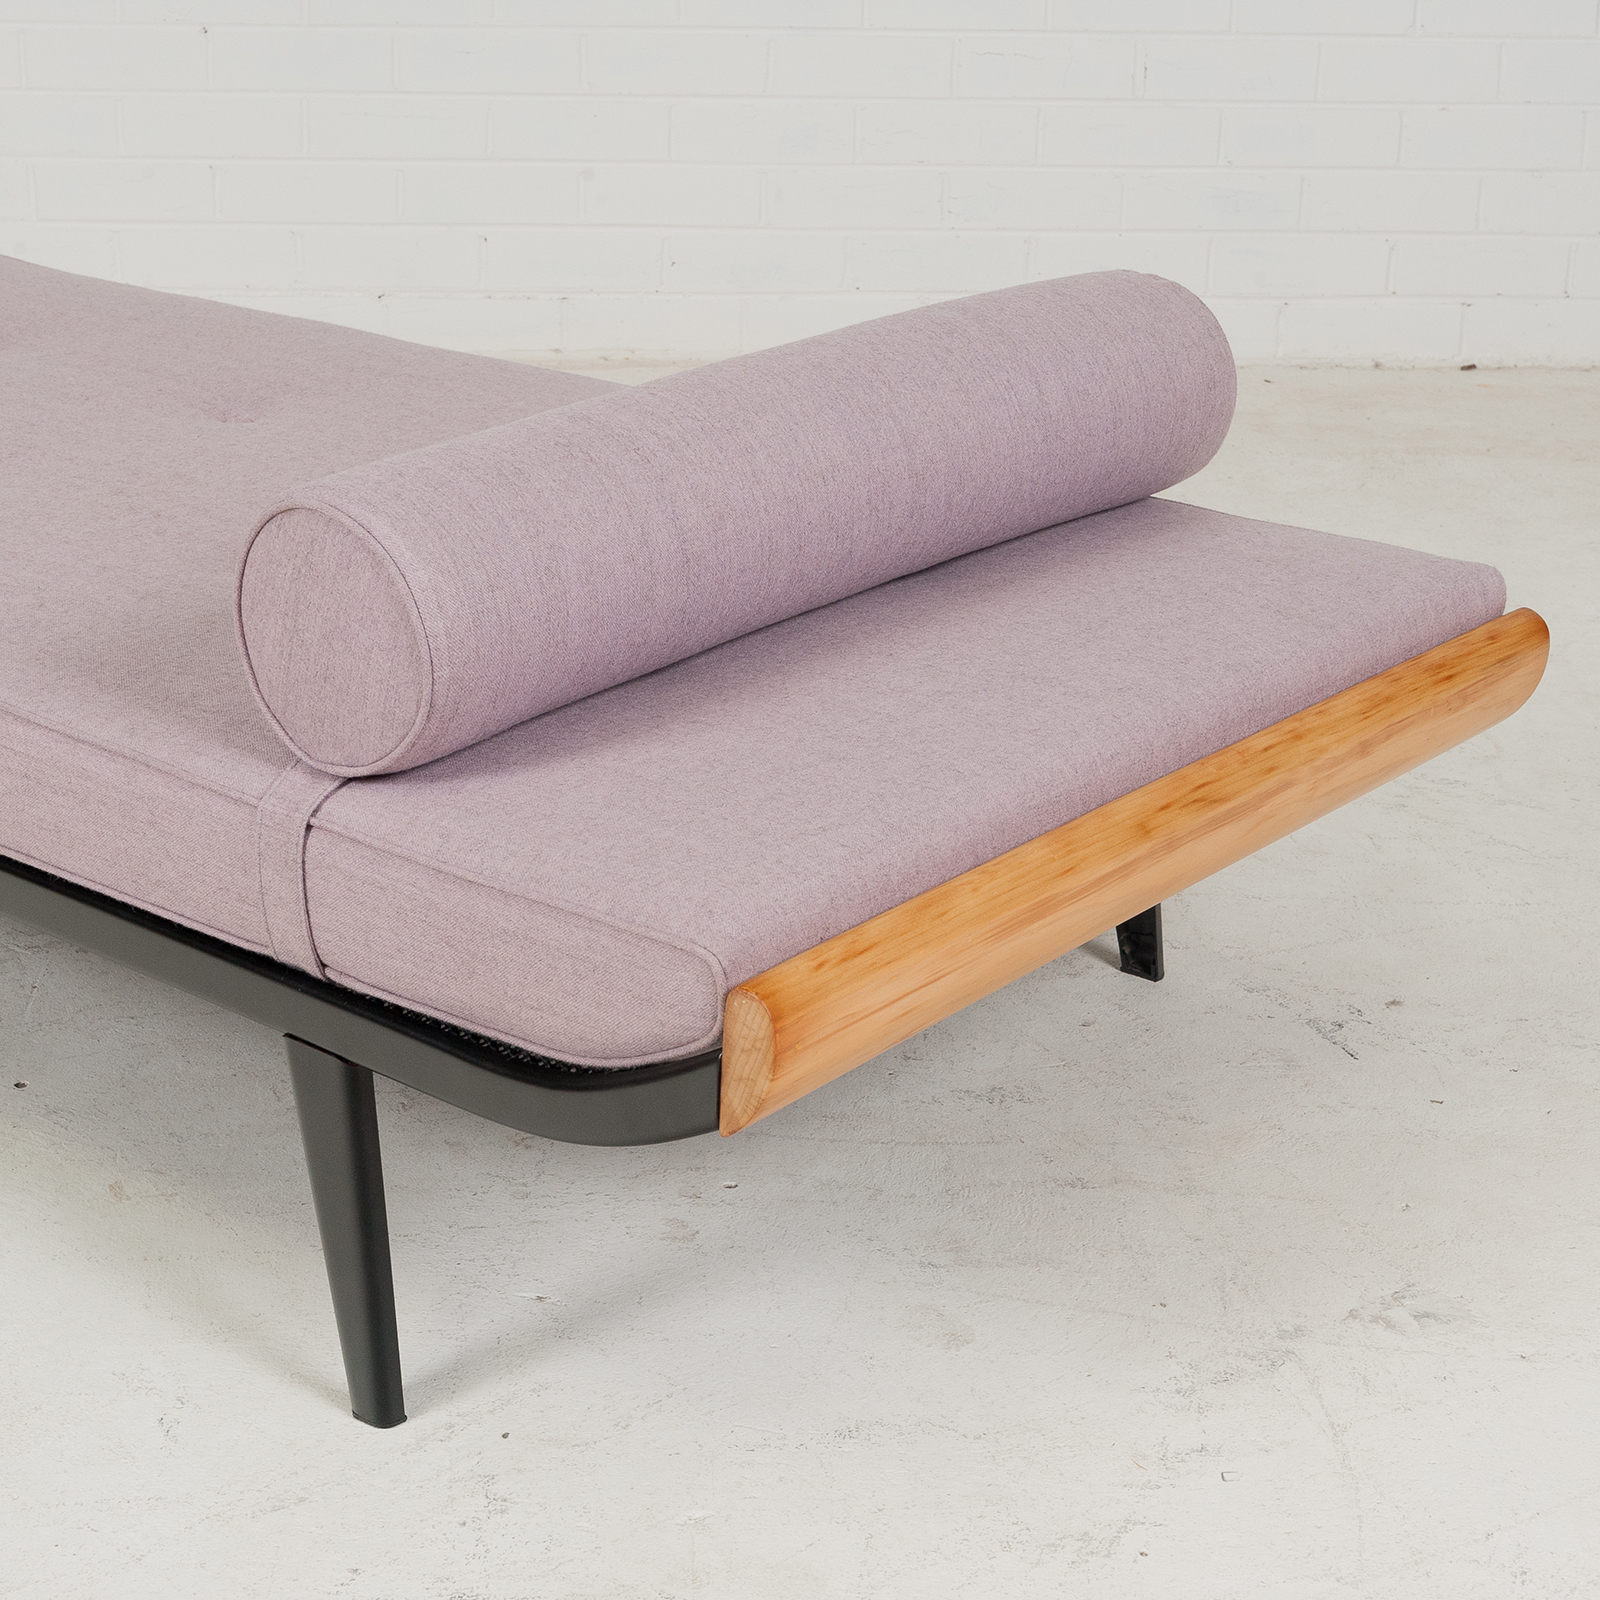 cleopatra-daybed-by-andre-cordemeyer-for-auping-in-new-wool-upholstery-1950s-netherlands-b-05